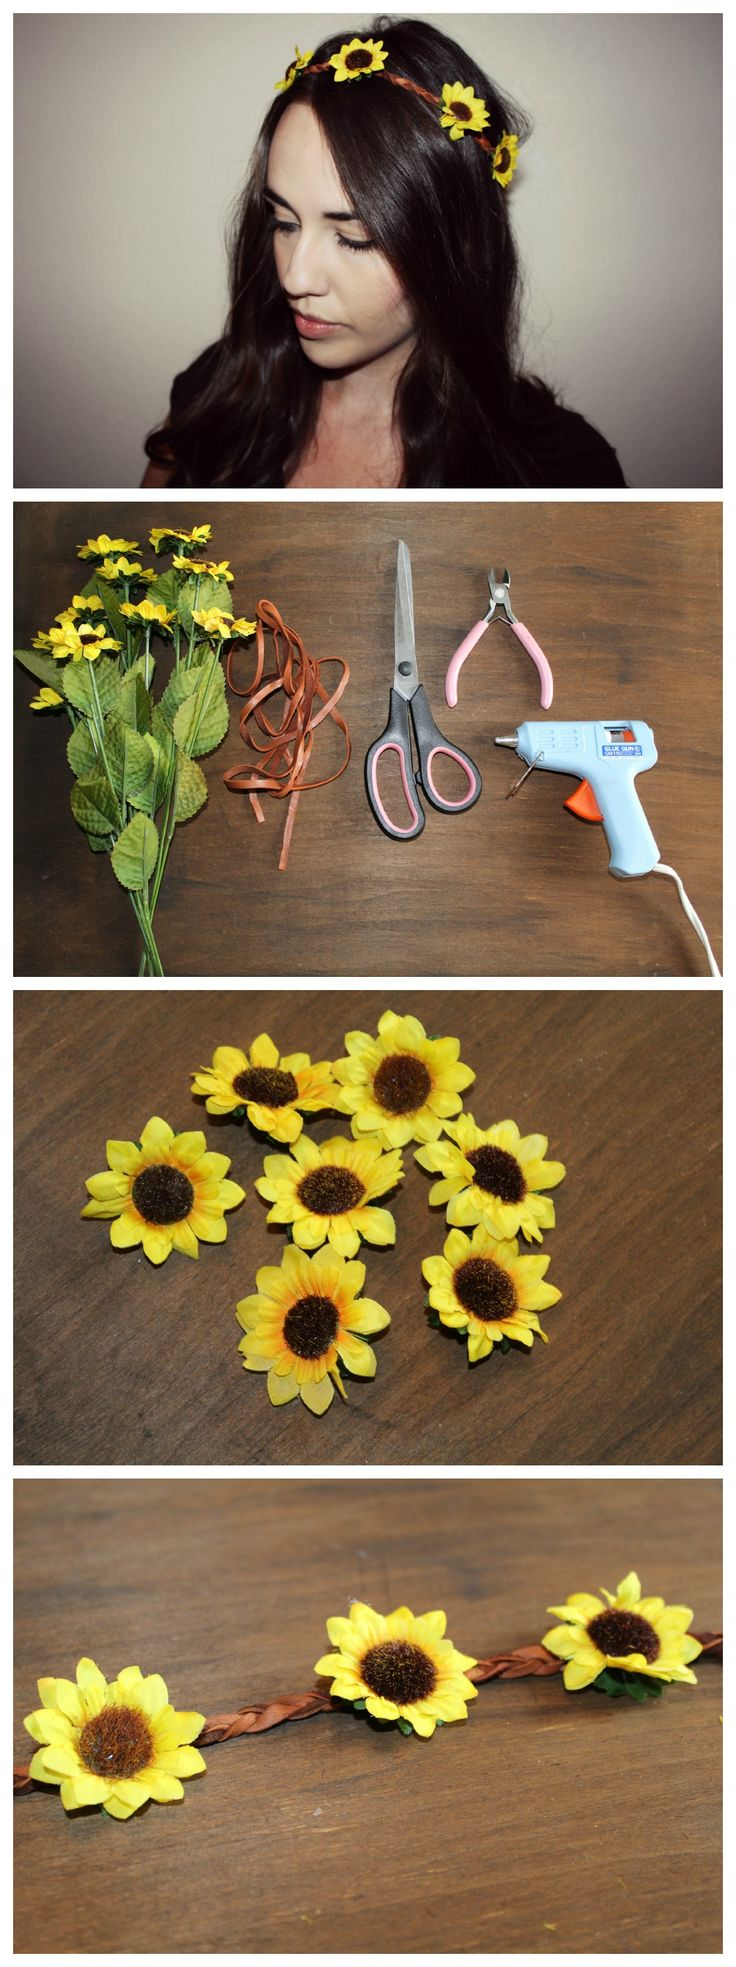 The Chic Country Girl: DIY Floral Crown Headband http://thechiccountrygirl.blogspot.com/2014/07/diy-fashion-boho-sunflower-headband.html